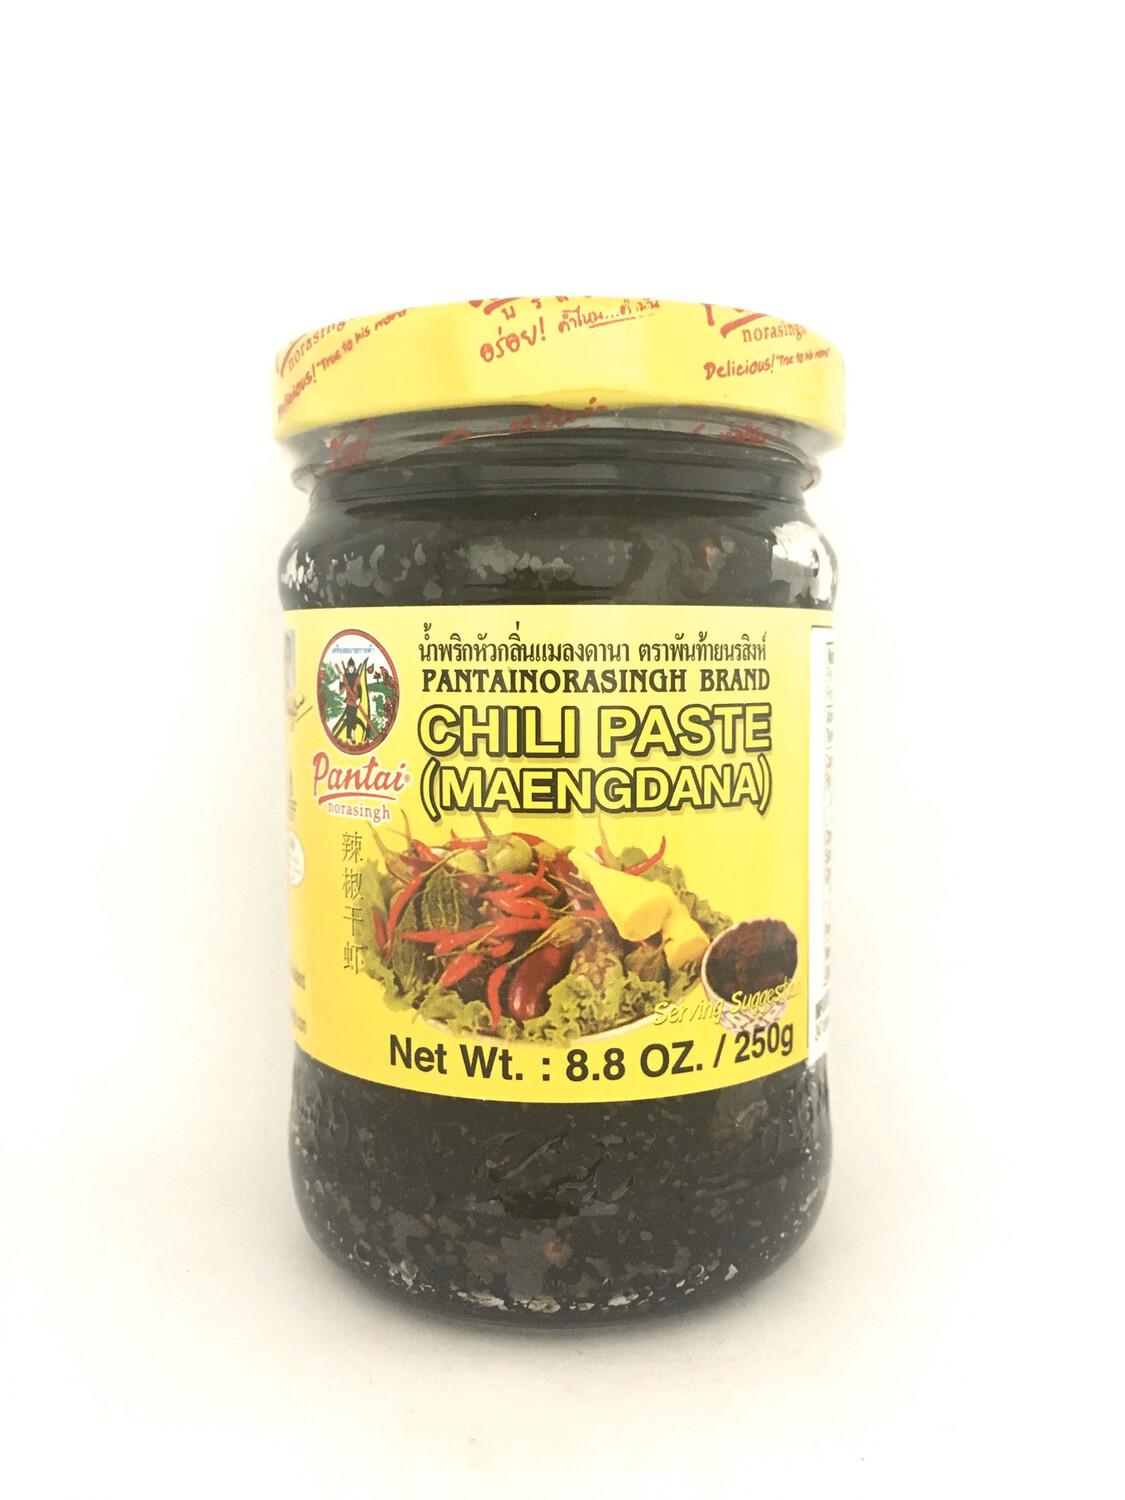 PANTAI CHILI PASTE (MAENGDANA) 12X250G